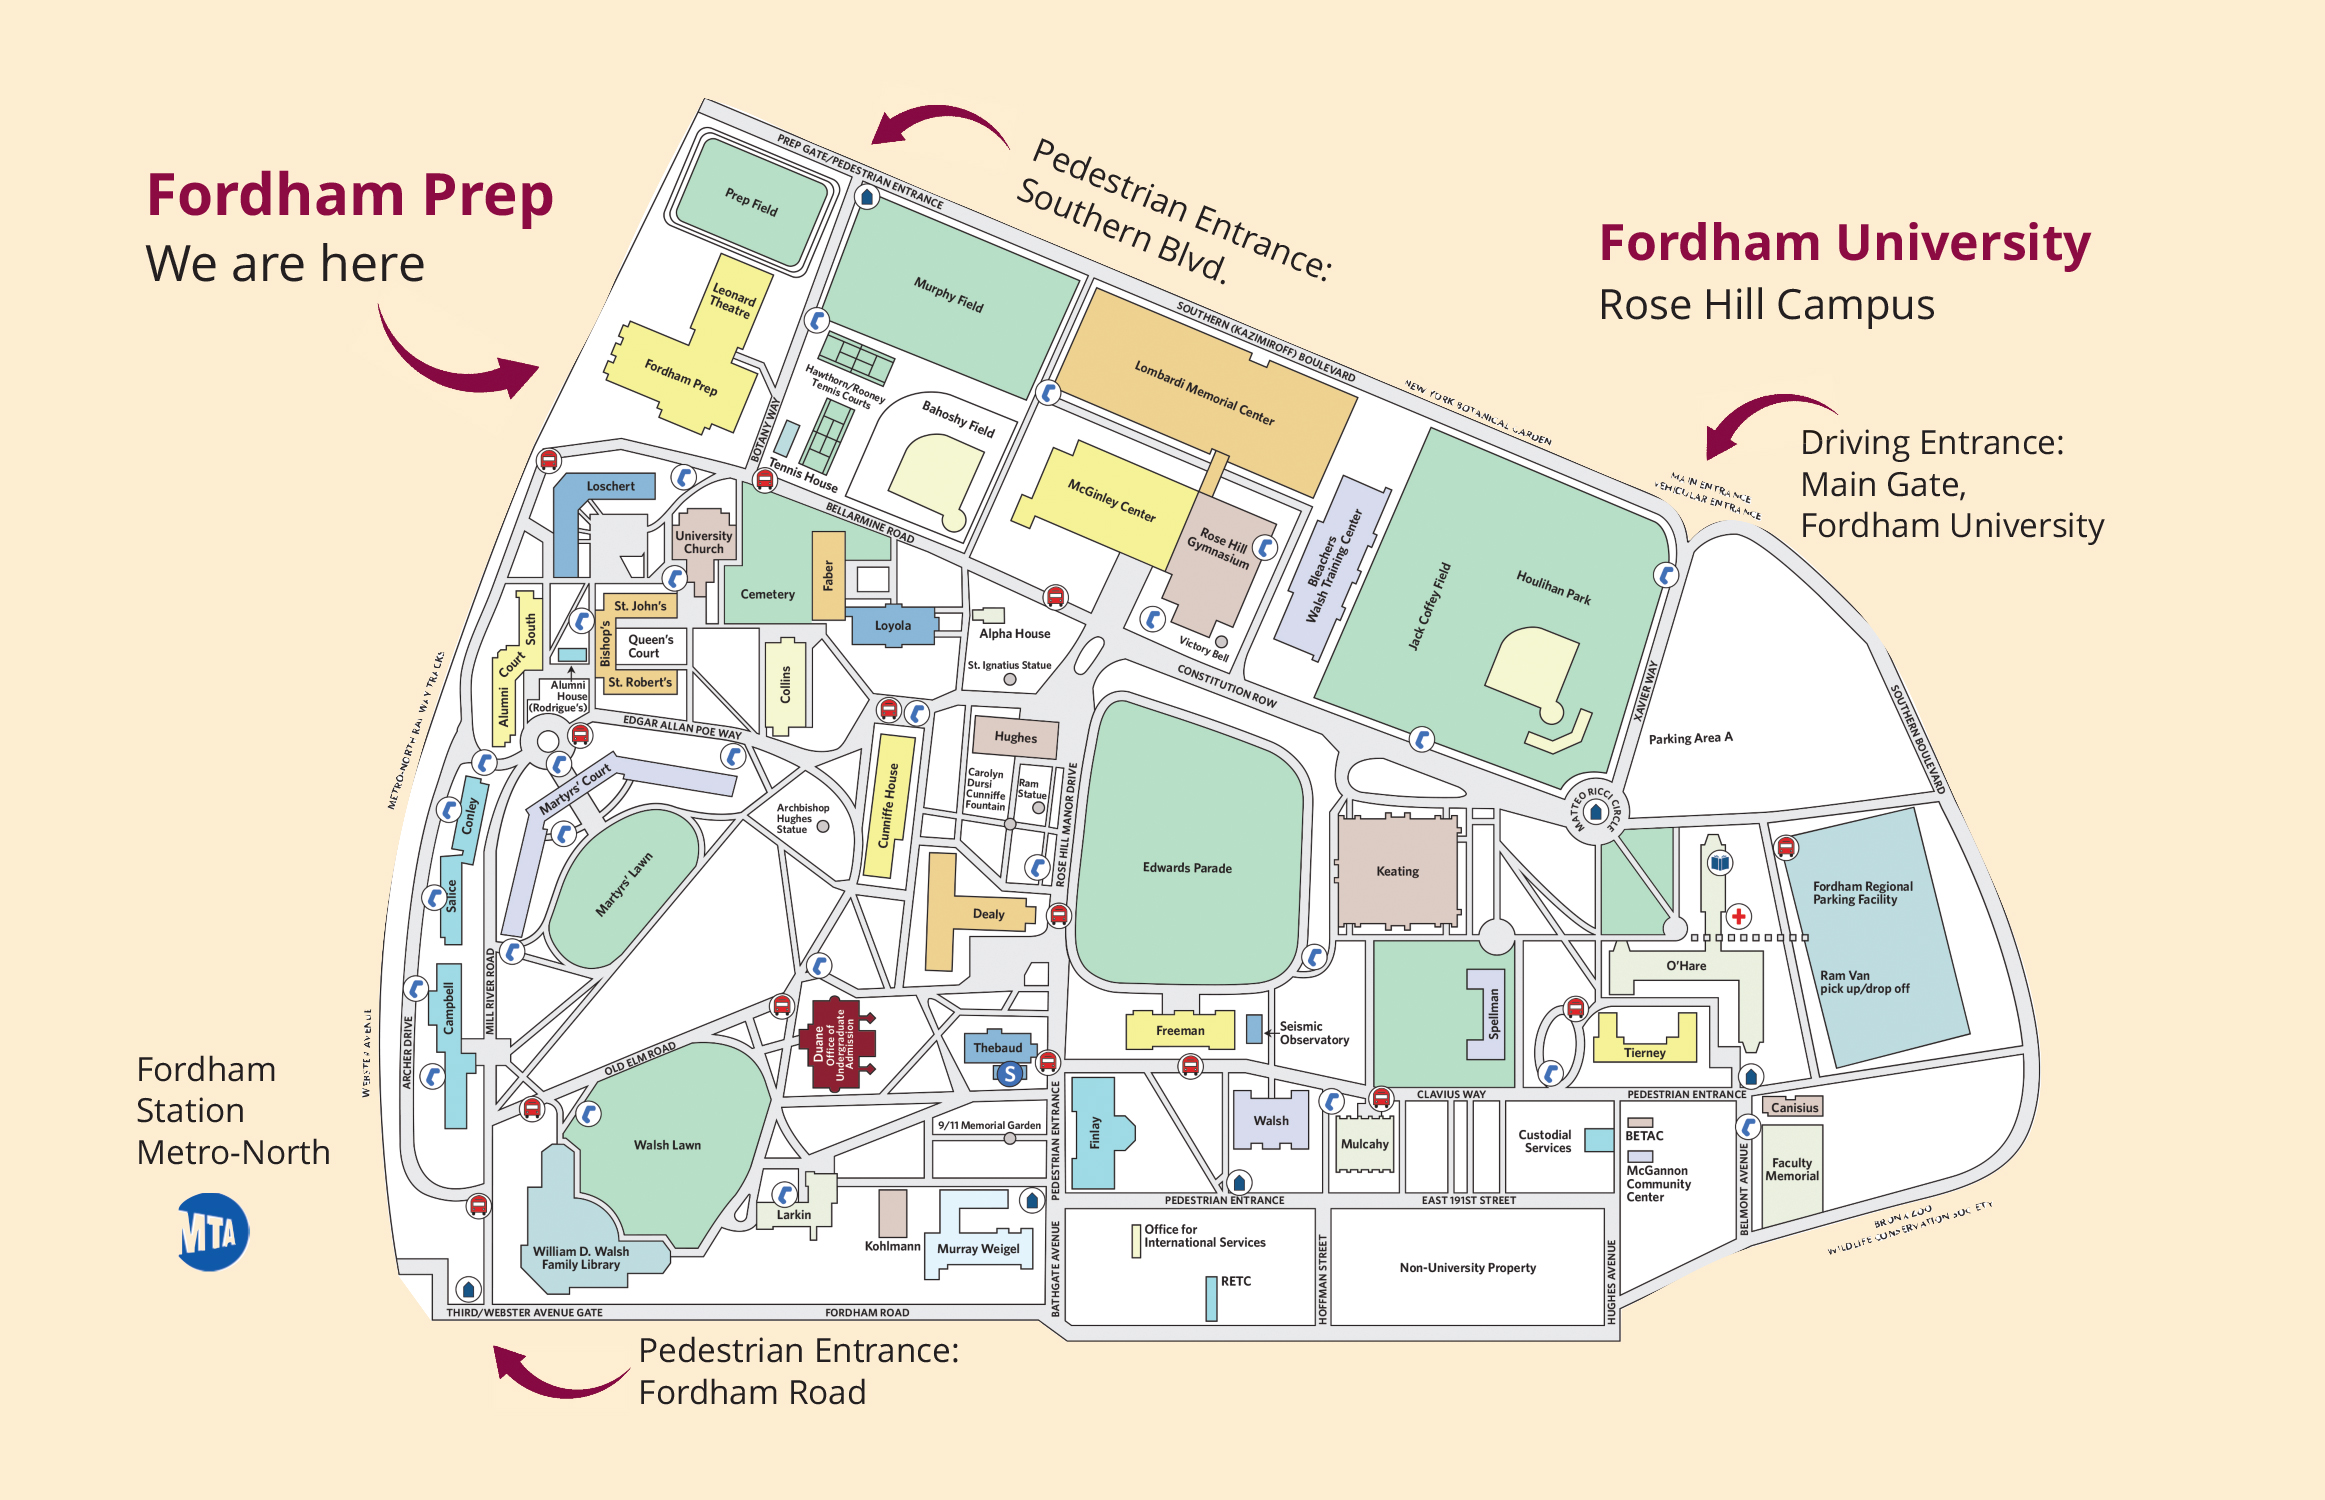 St Johns Campus Map.Fordham Preparatory School Maps Directions